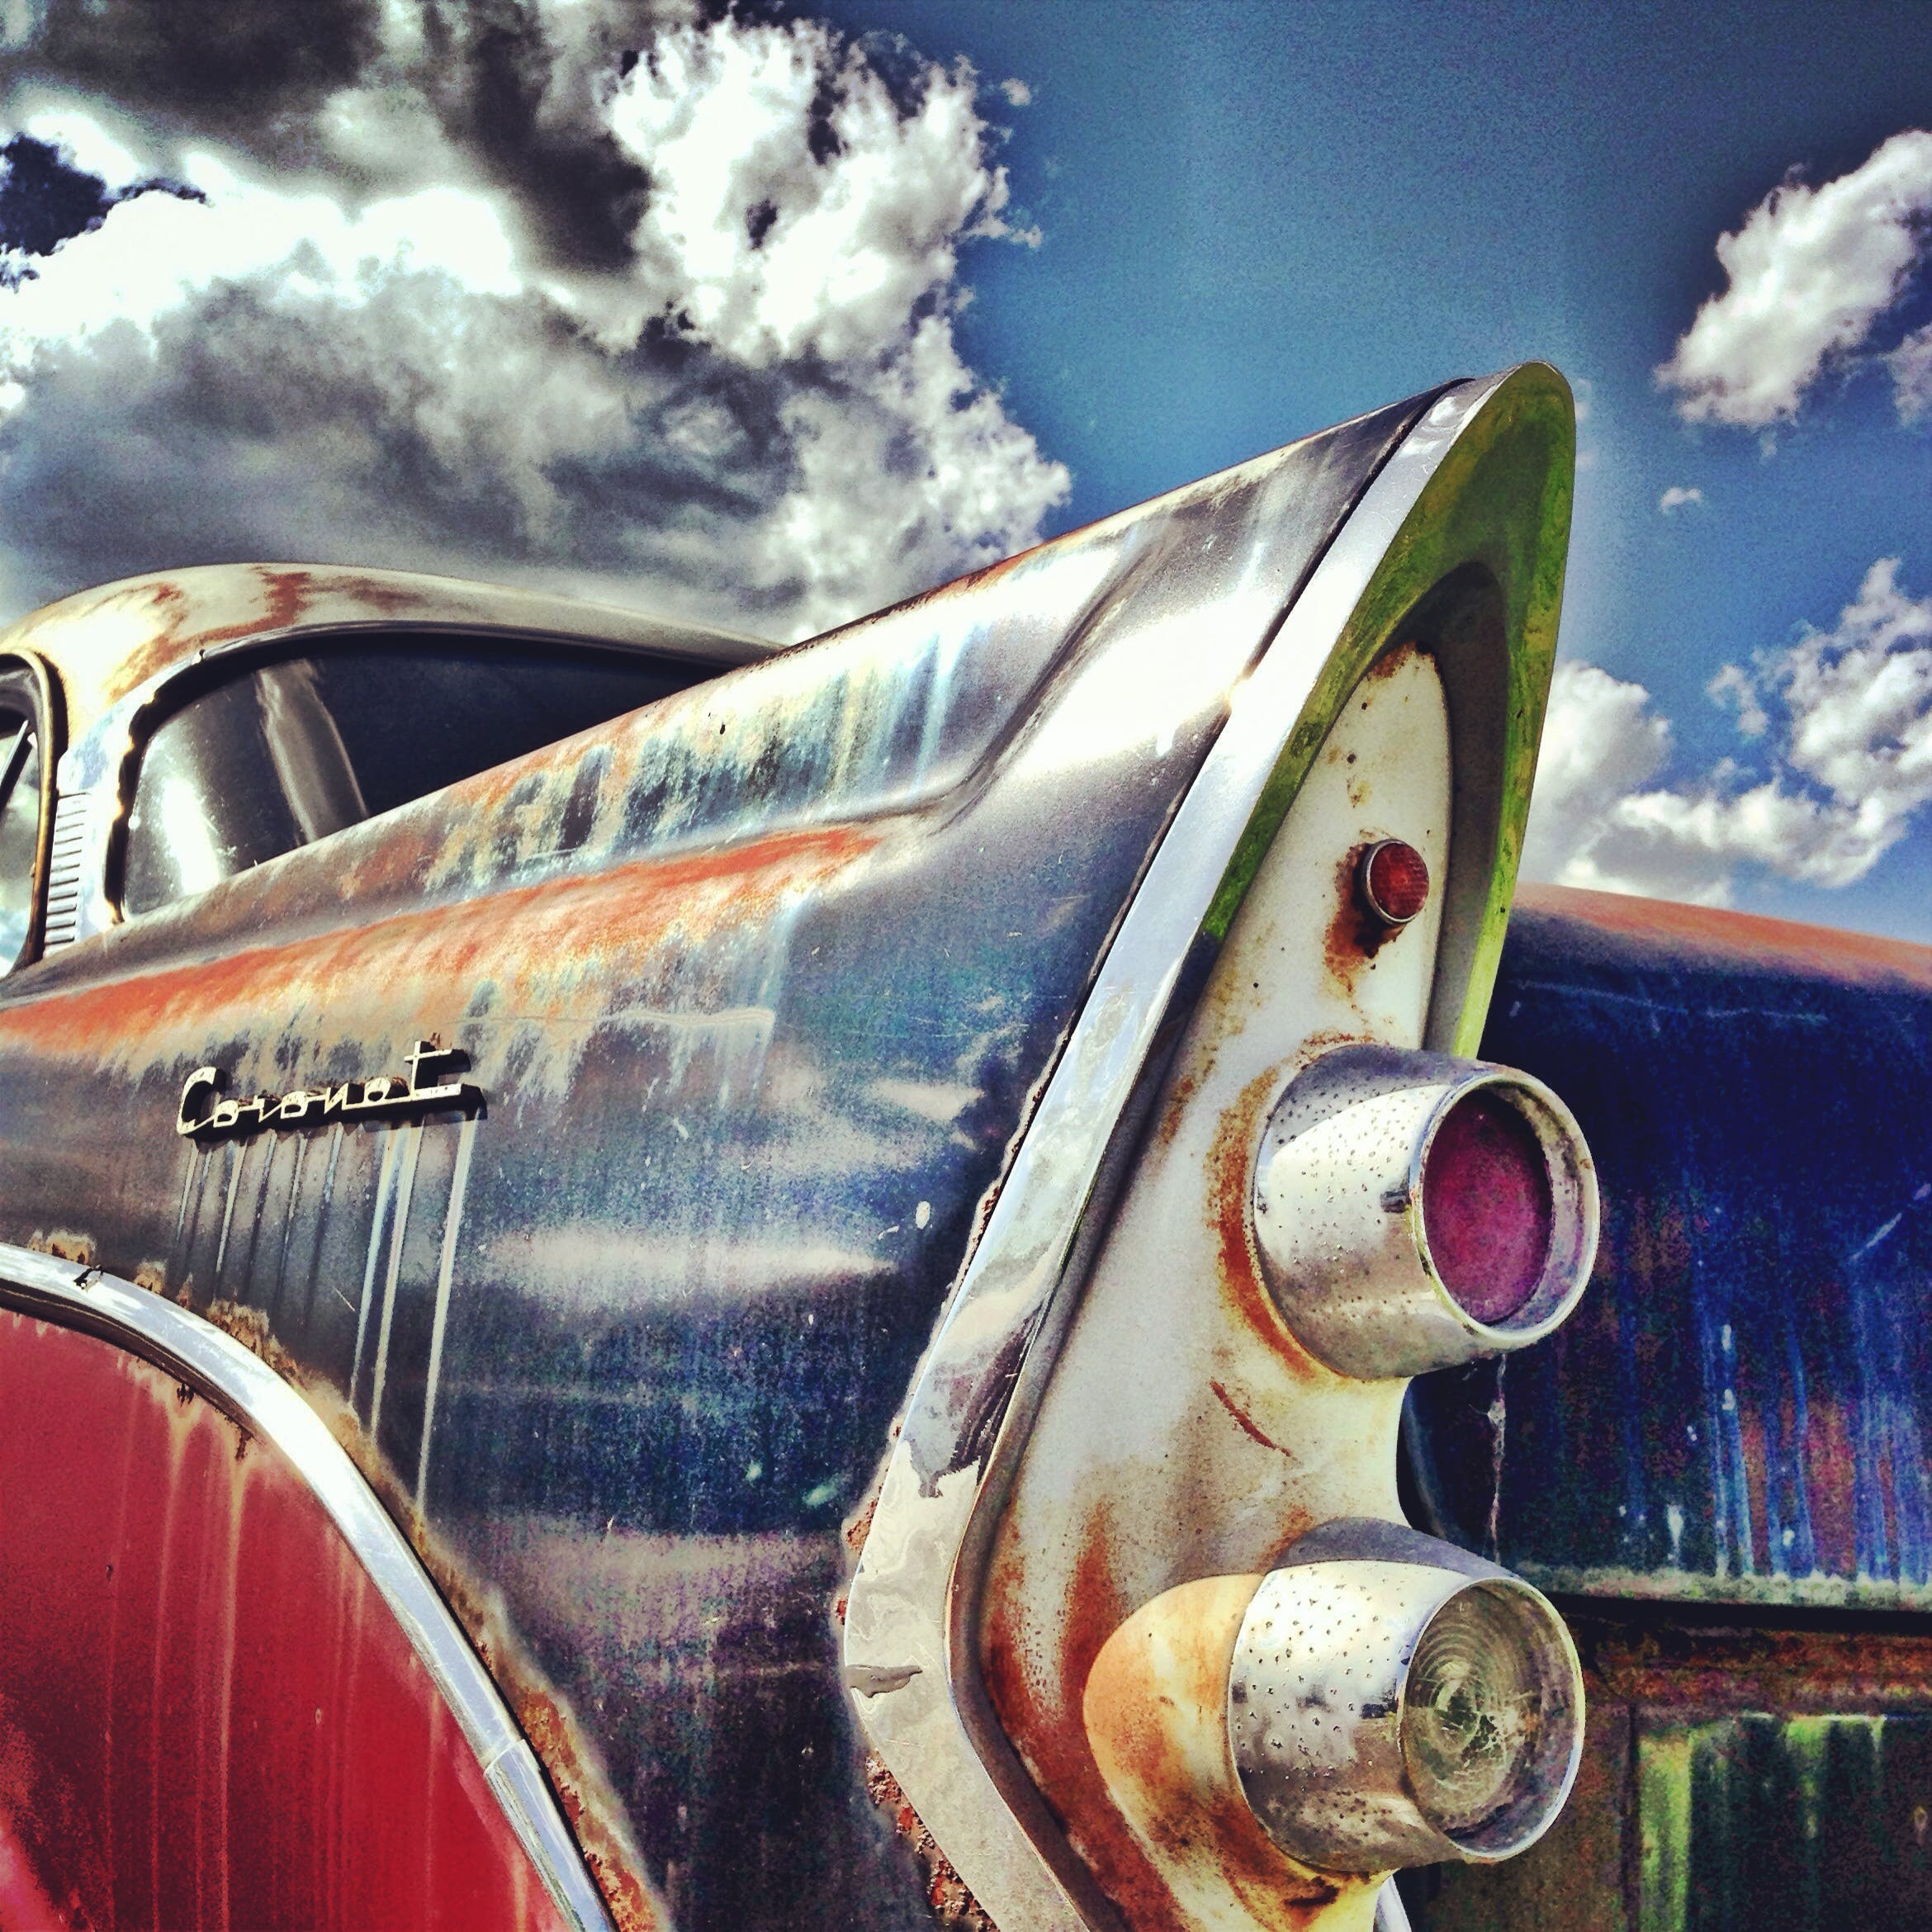 Used Cars: How Much Rust is Too Much?